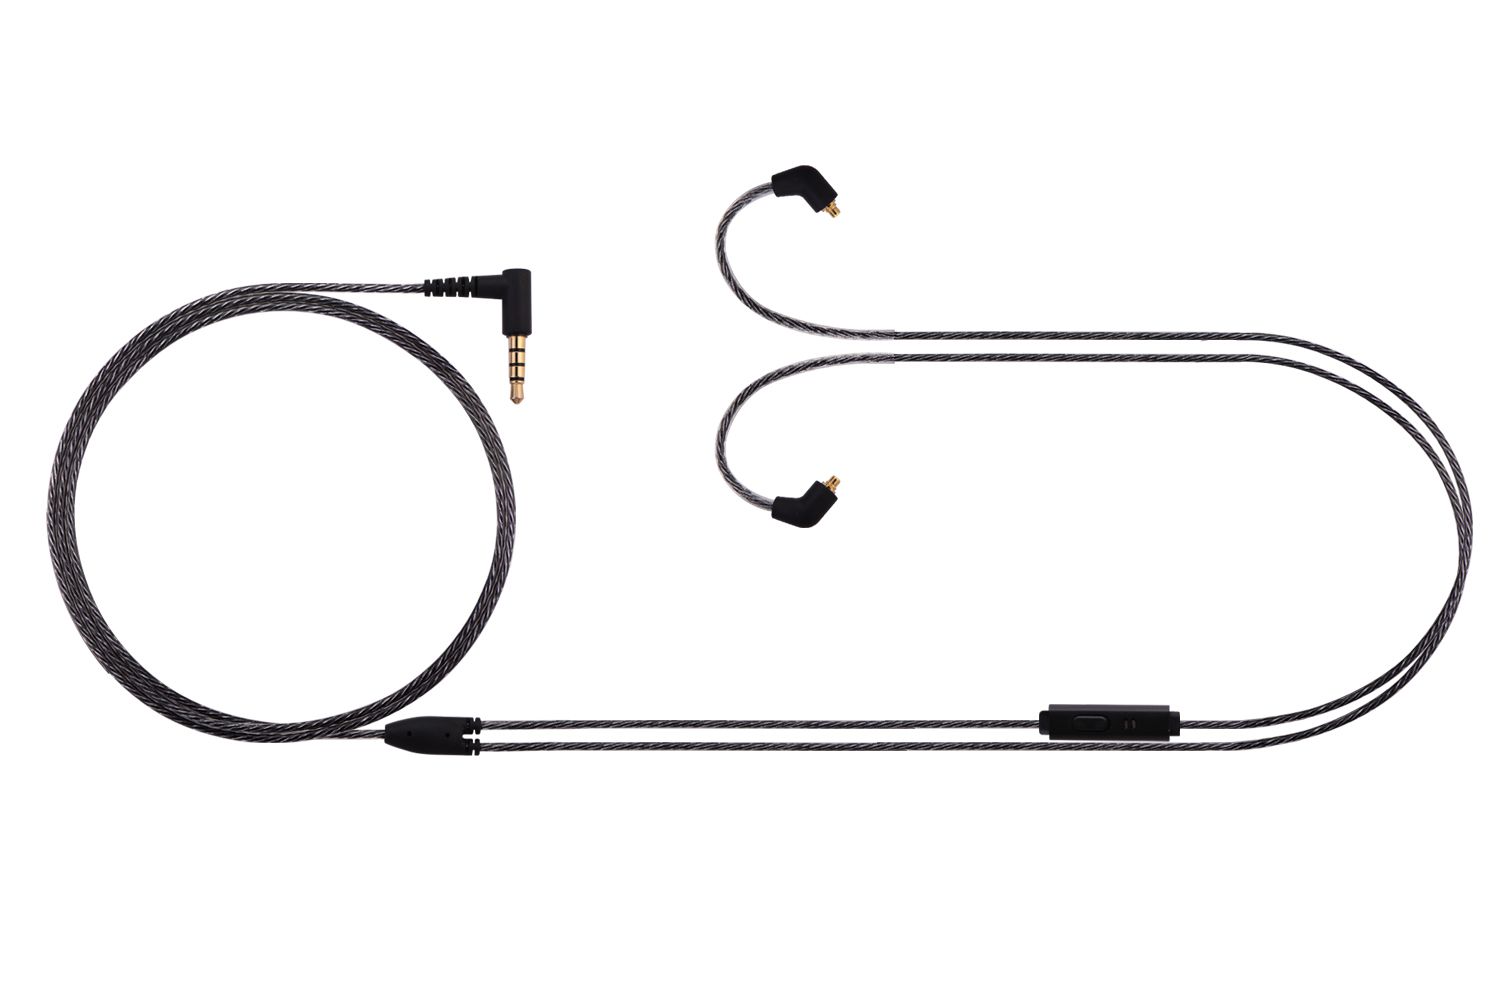 Basn Mc100 Replacement Earphones Cable With Microphone